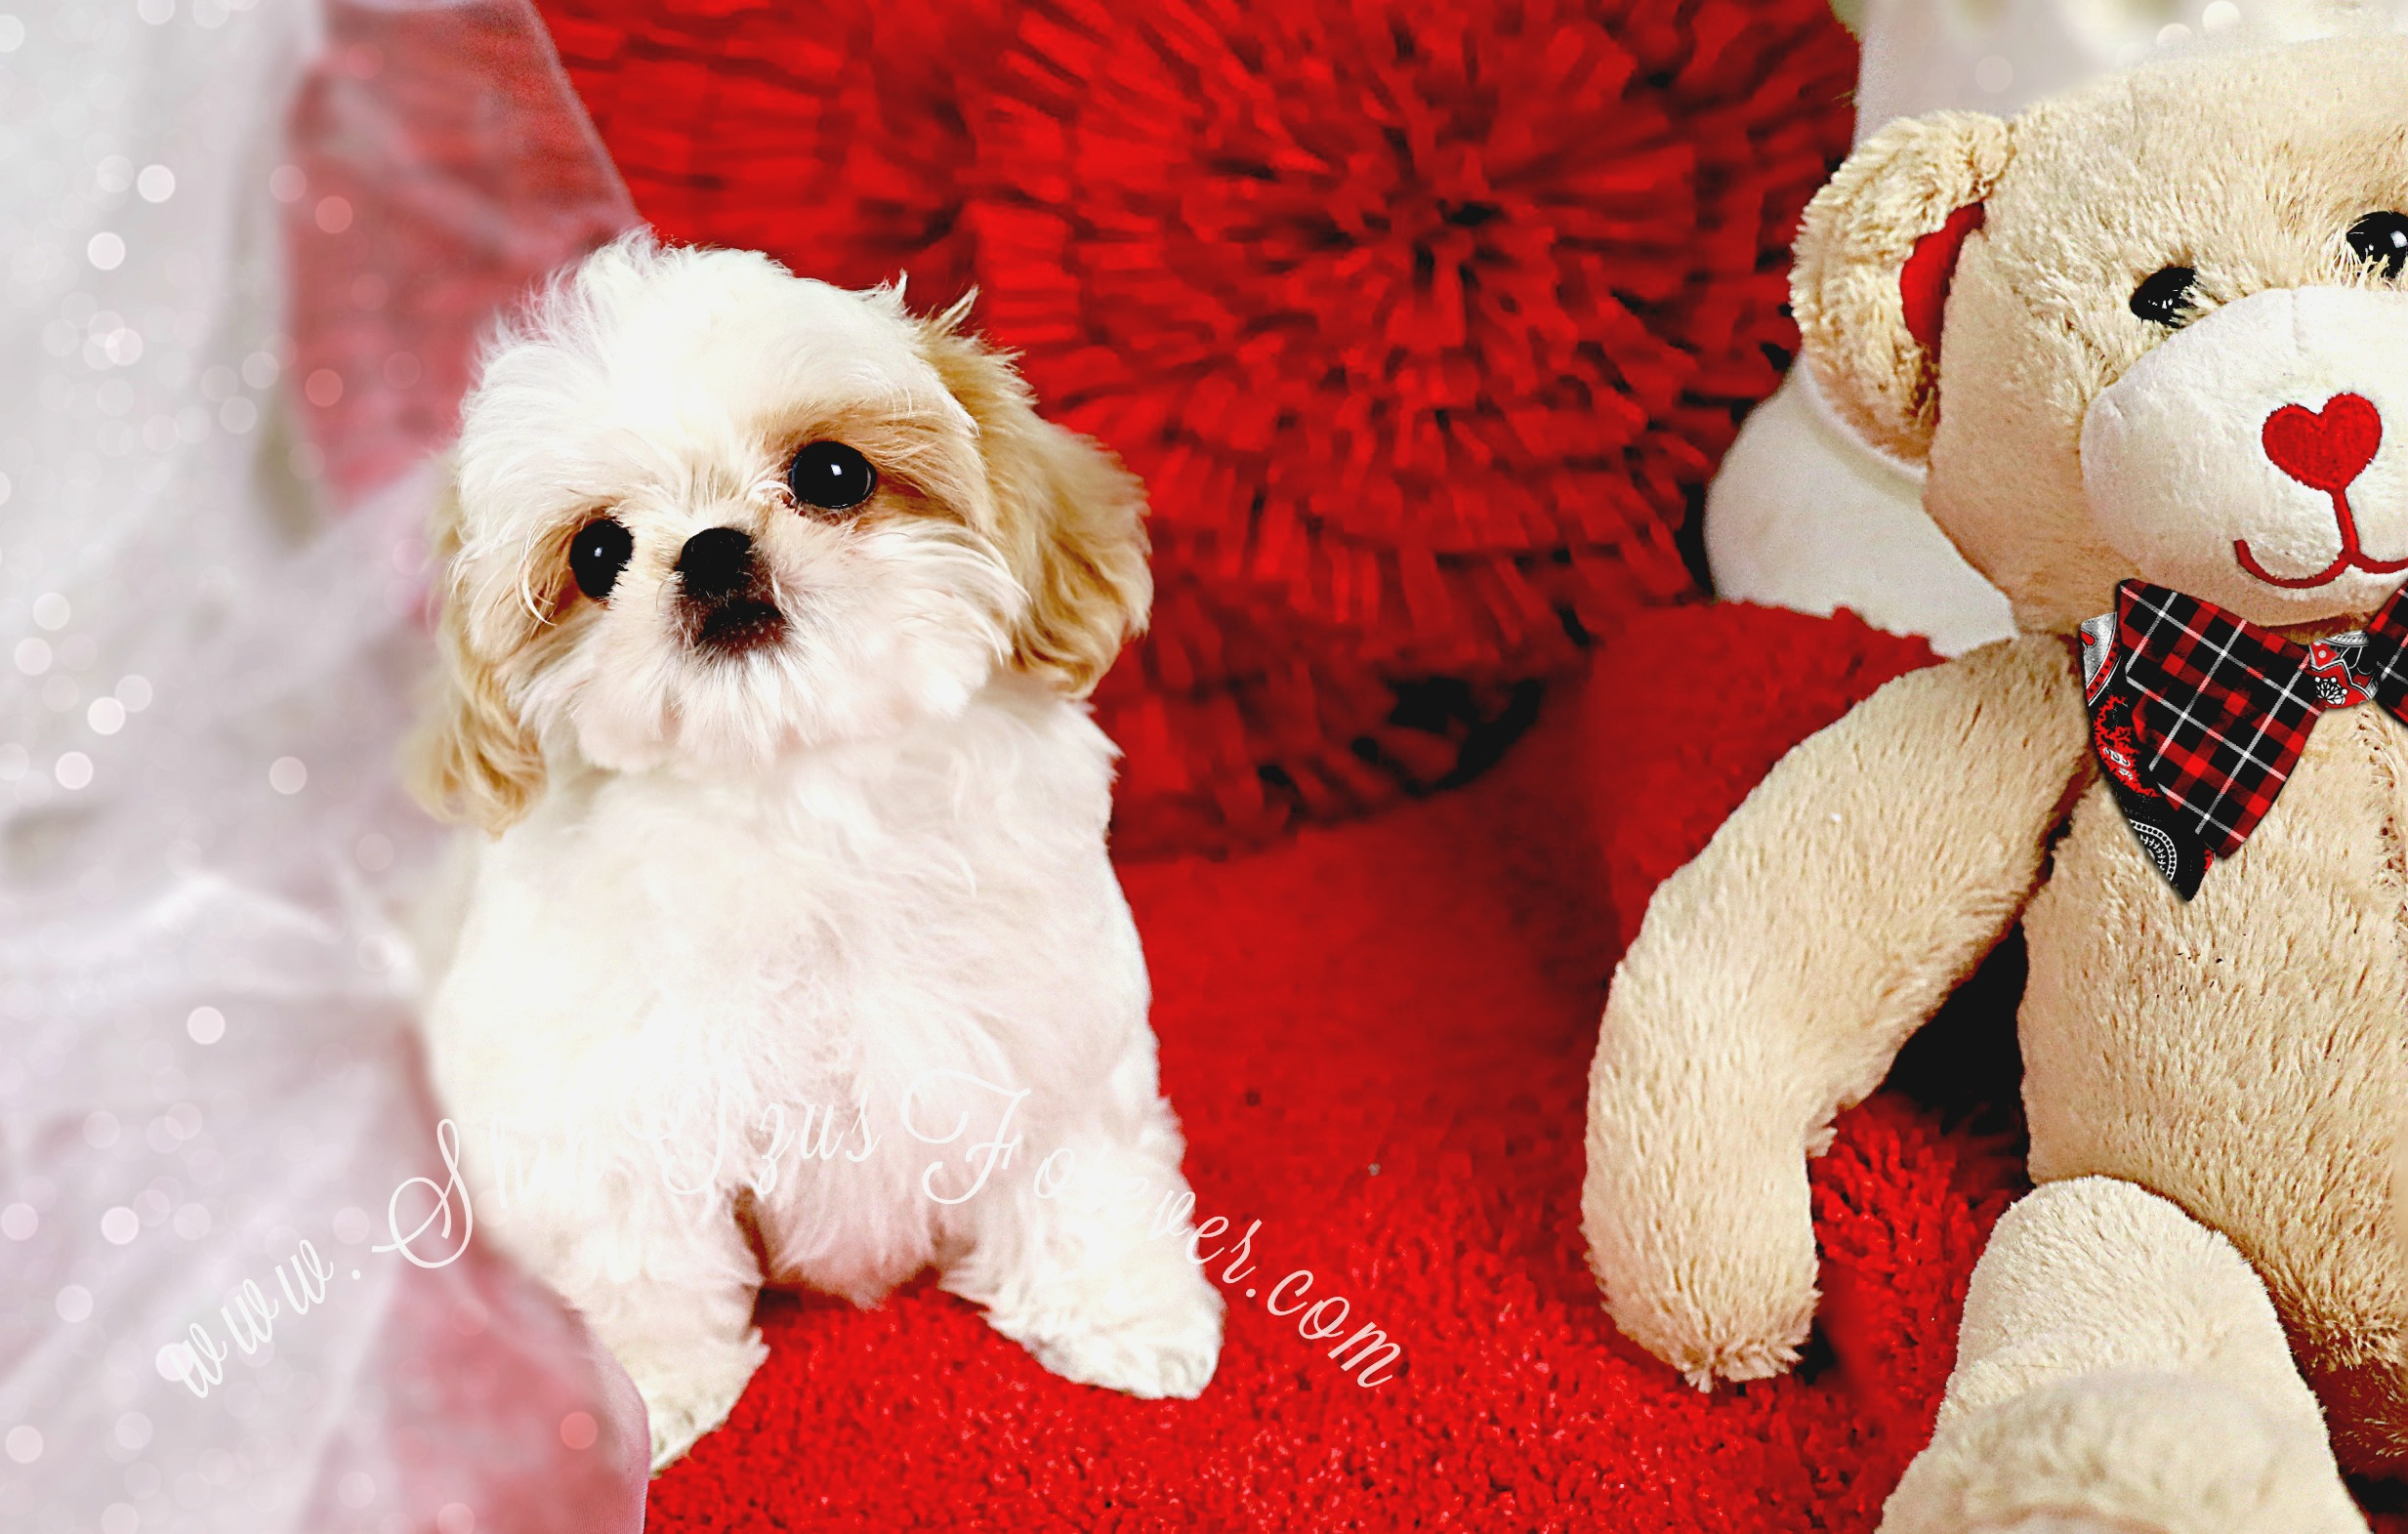 Imperial Shih Tzu, Imperial Shih Tzu for sale, Imperial Shih Tzu puppies, Imperial Shih Tzu puppies for sale, Imperial Shih Tzu California, Imperial Shih Tzu Texas, Imperial Shih Tzu Florida, Imperial Shih Tzu Louisiana, Imperial Shih Tzu New York, Imperial Shih Tzu Pa.